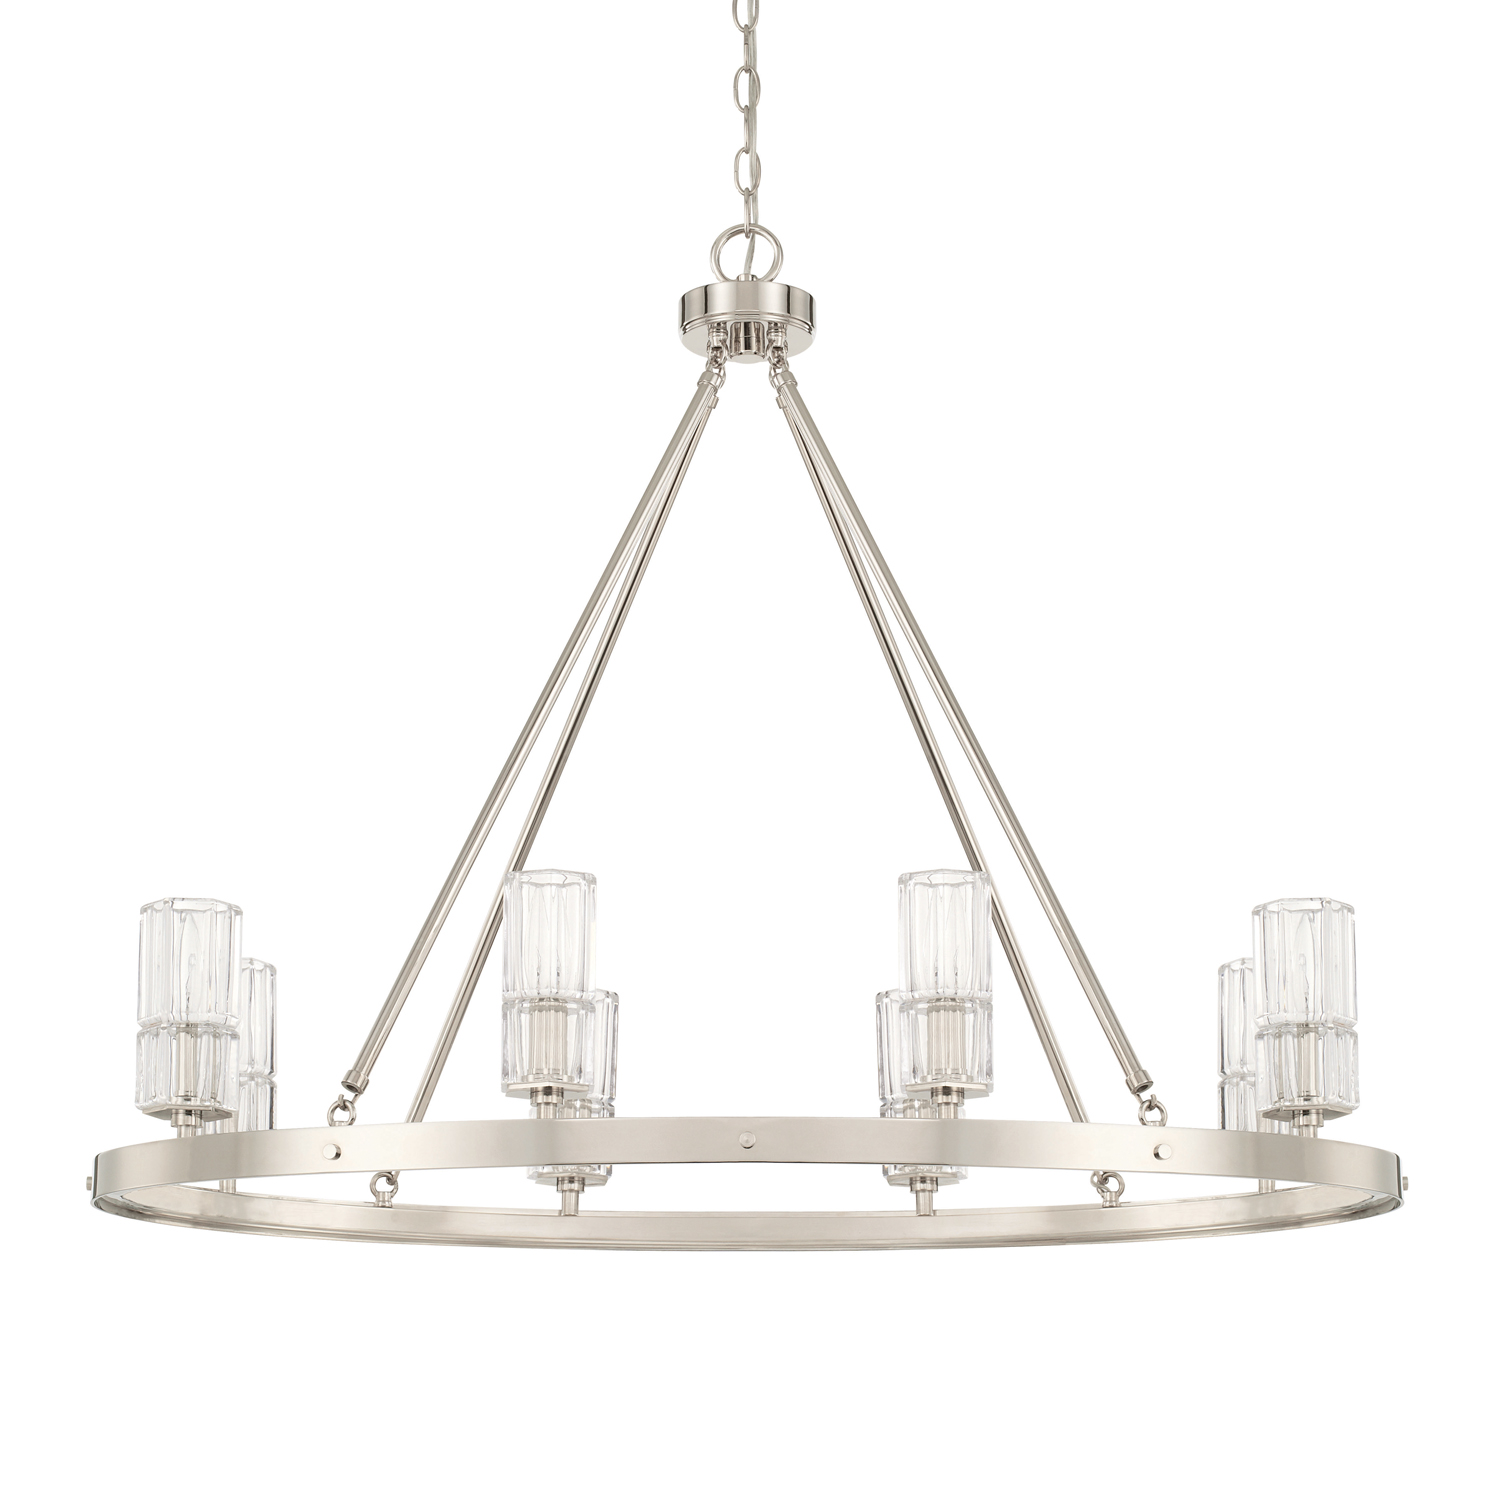 Eight Light Island Chandelier from the Sloane collection by Capital Lighting 827681PN 457